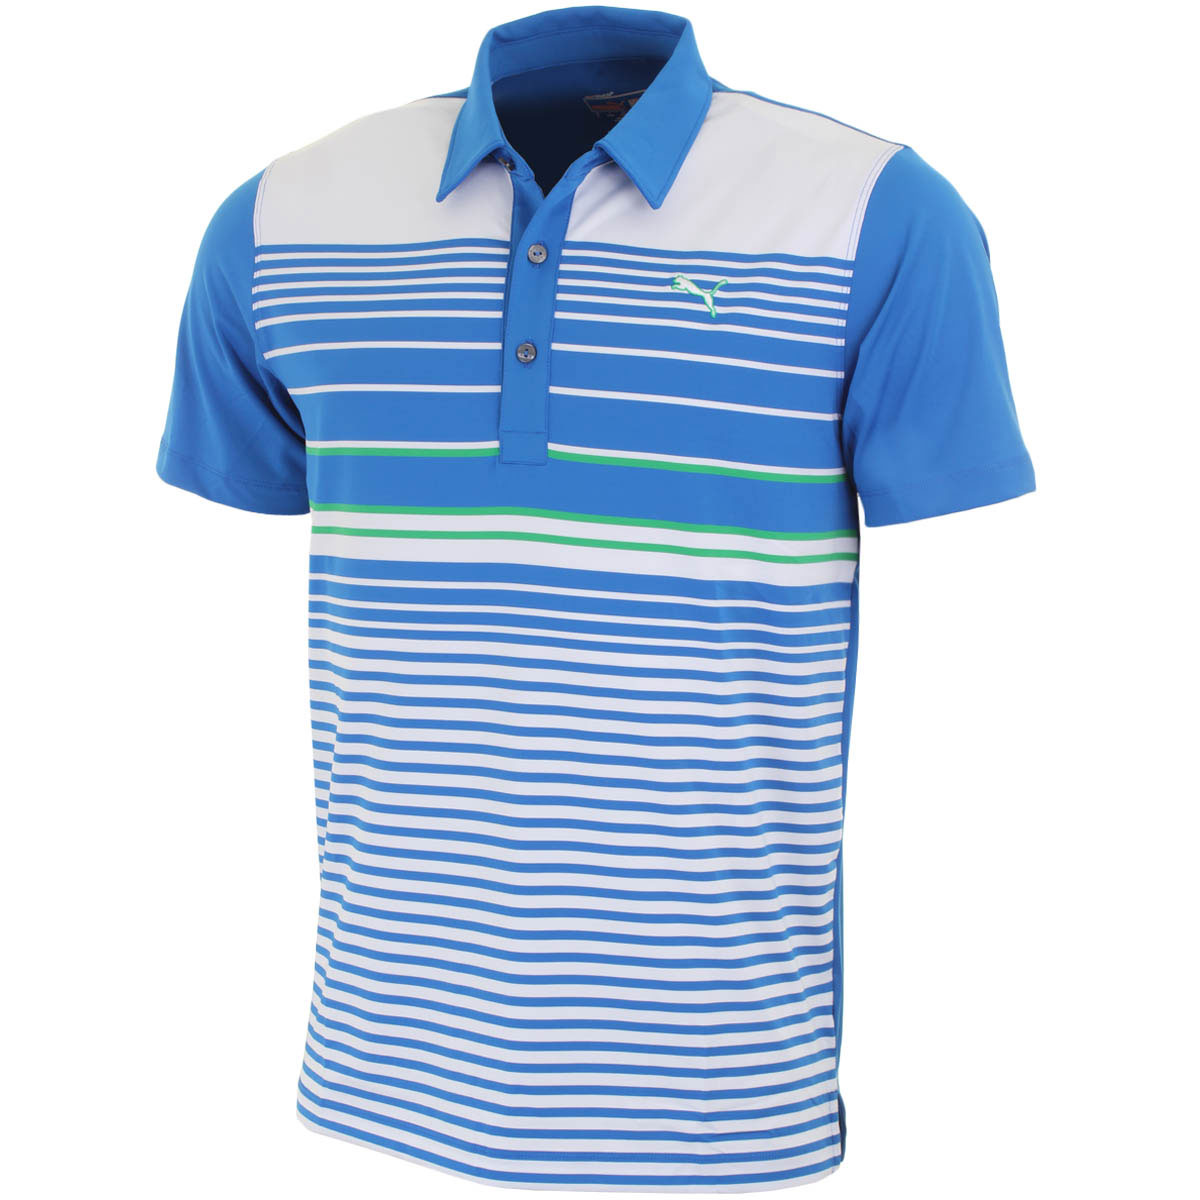 Puma golf mens yd stripe polo shirt ebay for Mens puma golf shirts